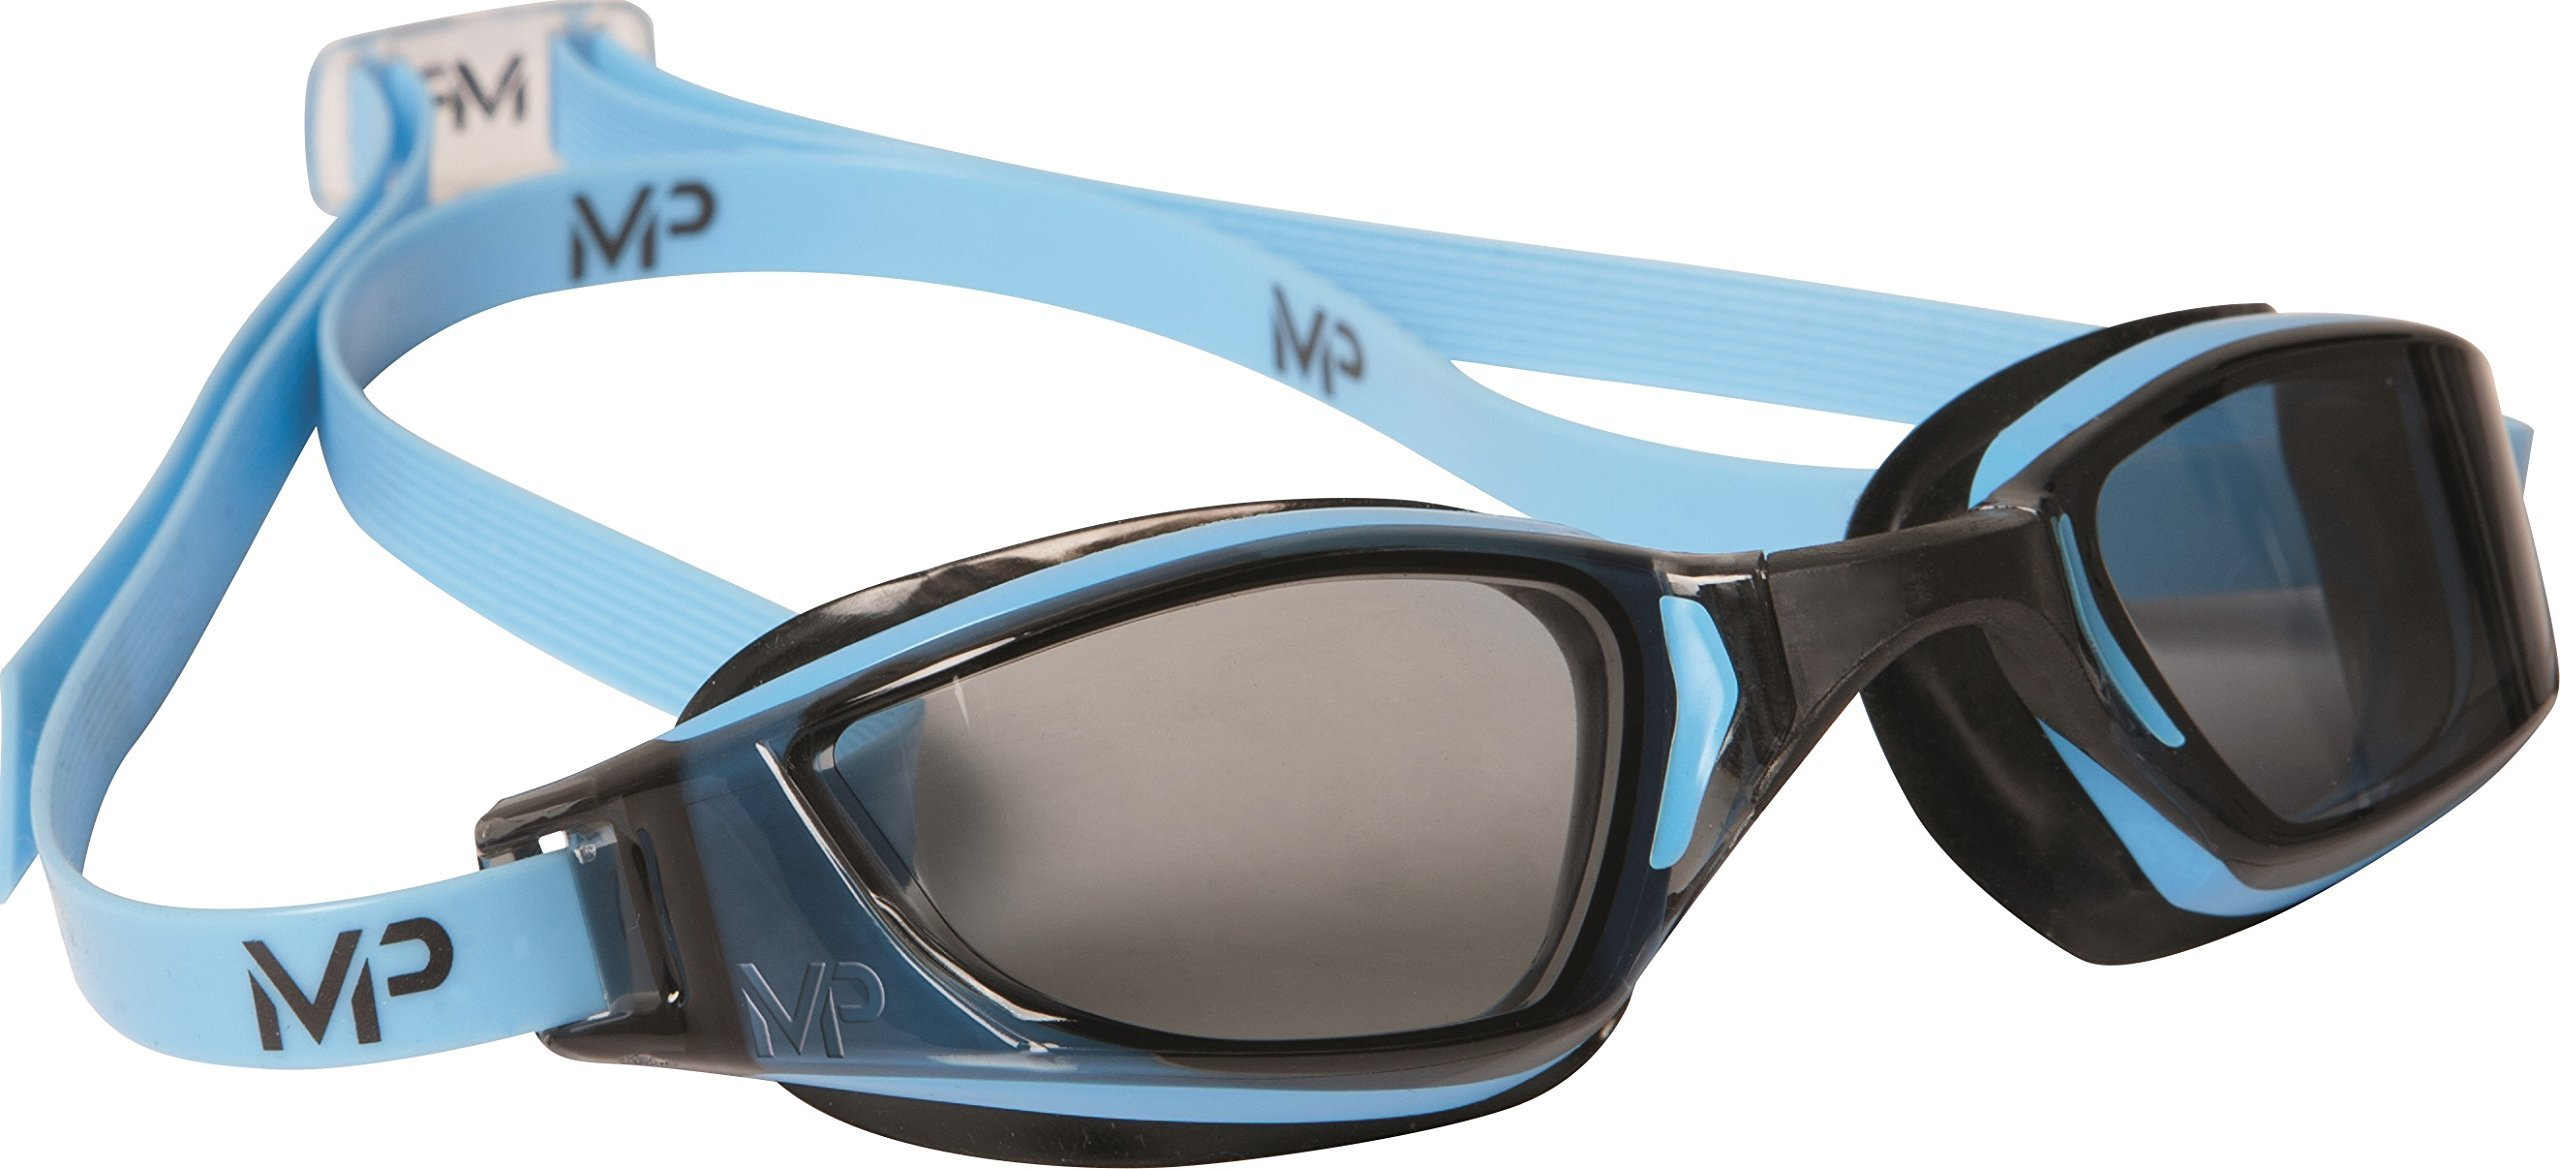 MP Michael Phelps XCEED Swimming Goggles, Smoke Lens, Blue/Black Frame